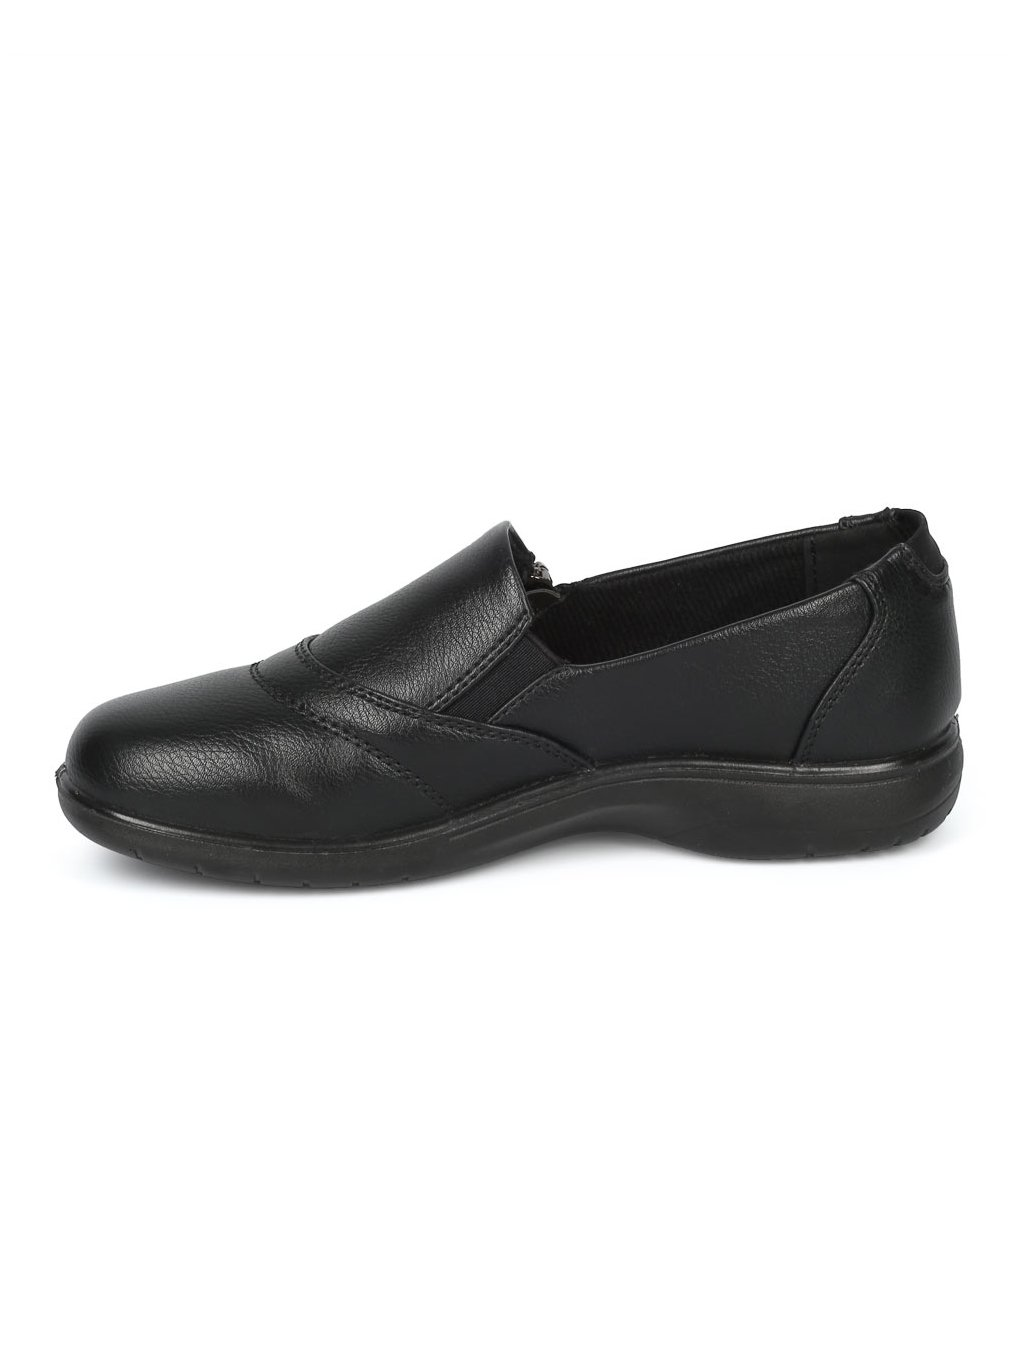 Alrisco Women Leatherette Round Toe Elevated Heel Work Loafer HD92 - Black Leatherette (Size: 7.0) by Alrisco (Image #4)